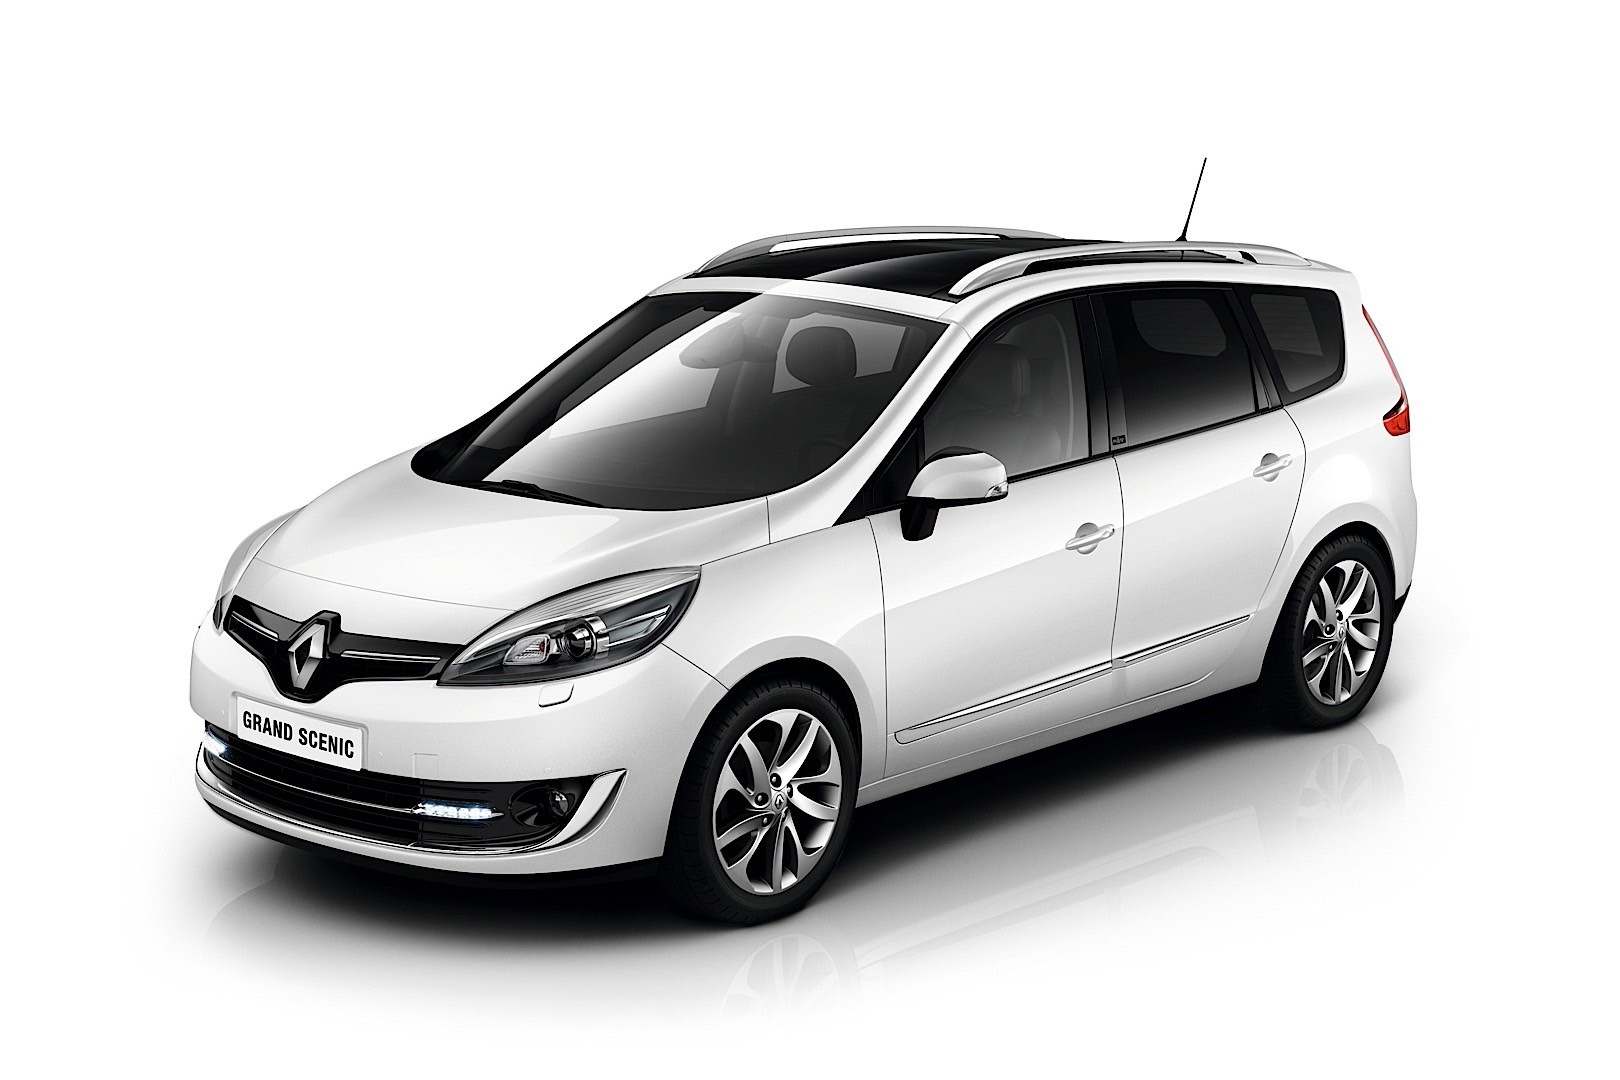 renault scenic specs 2013 2014 2015 2016 autoevolution. Black Bedroom Furniture Sets. Home Design Ideas